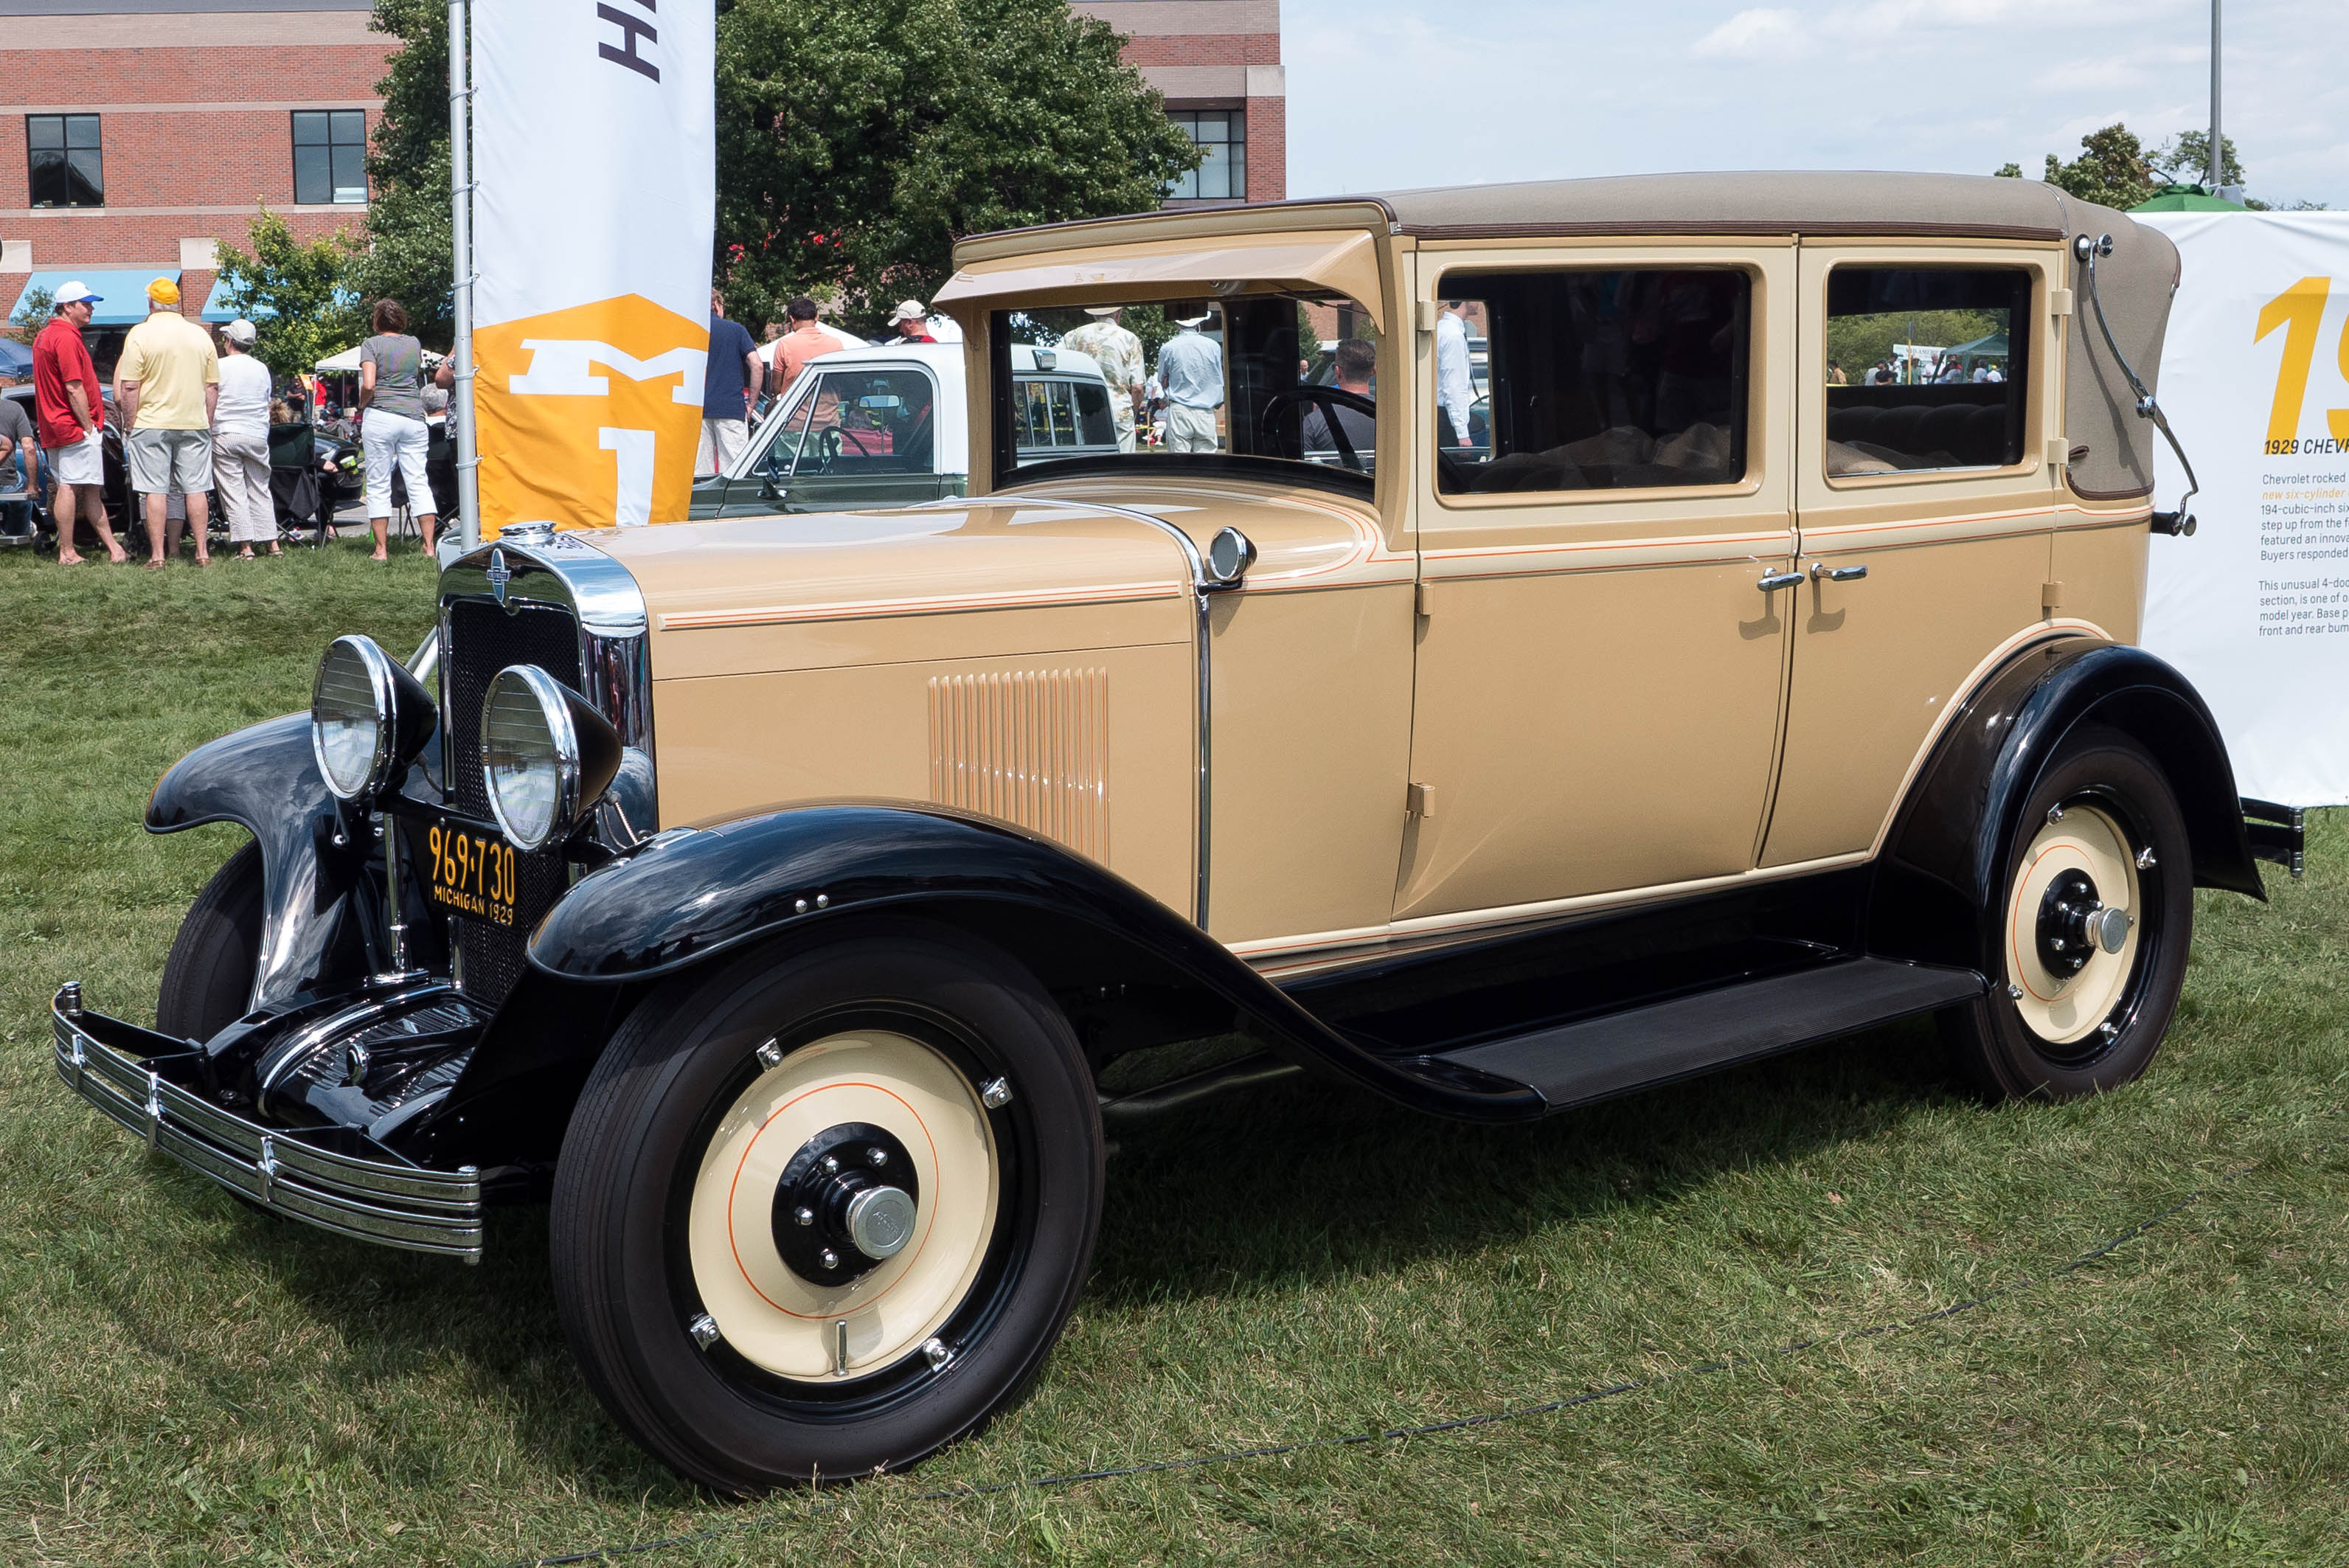 1929 Chevrolet 4-door Landau Convertible, Car, Classic, Cruise, Dmc, HQ Photo